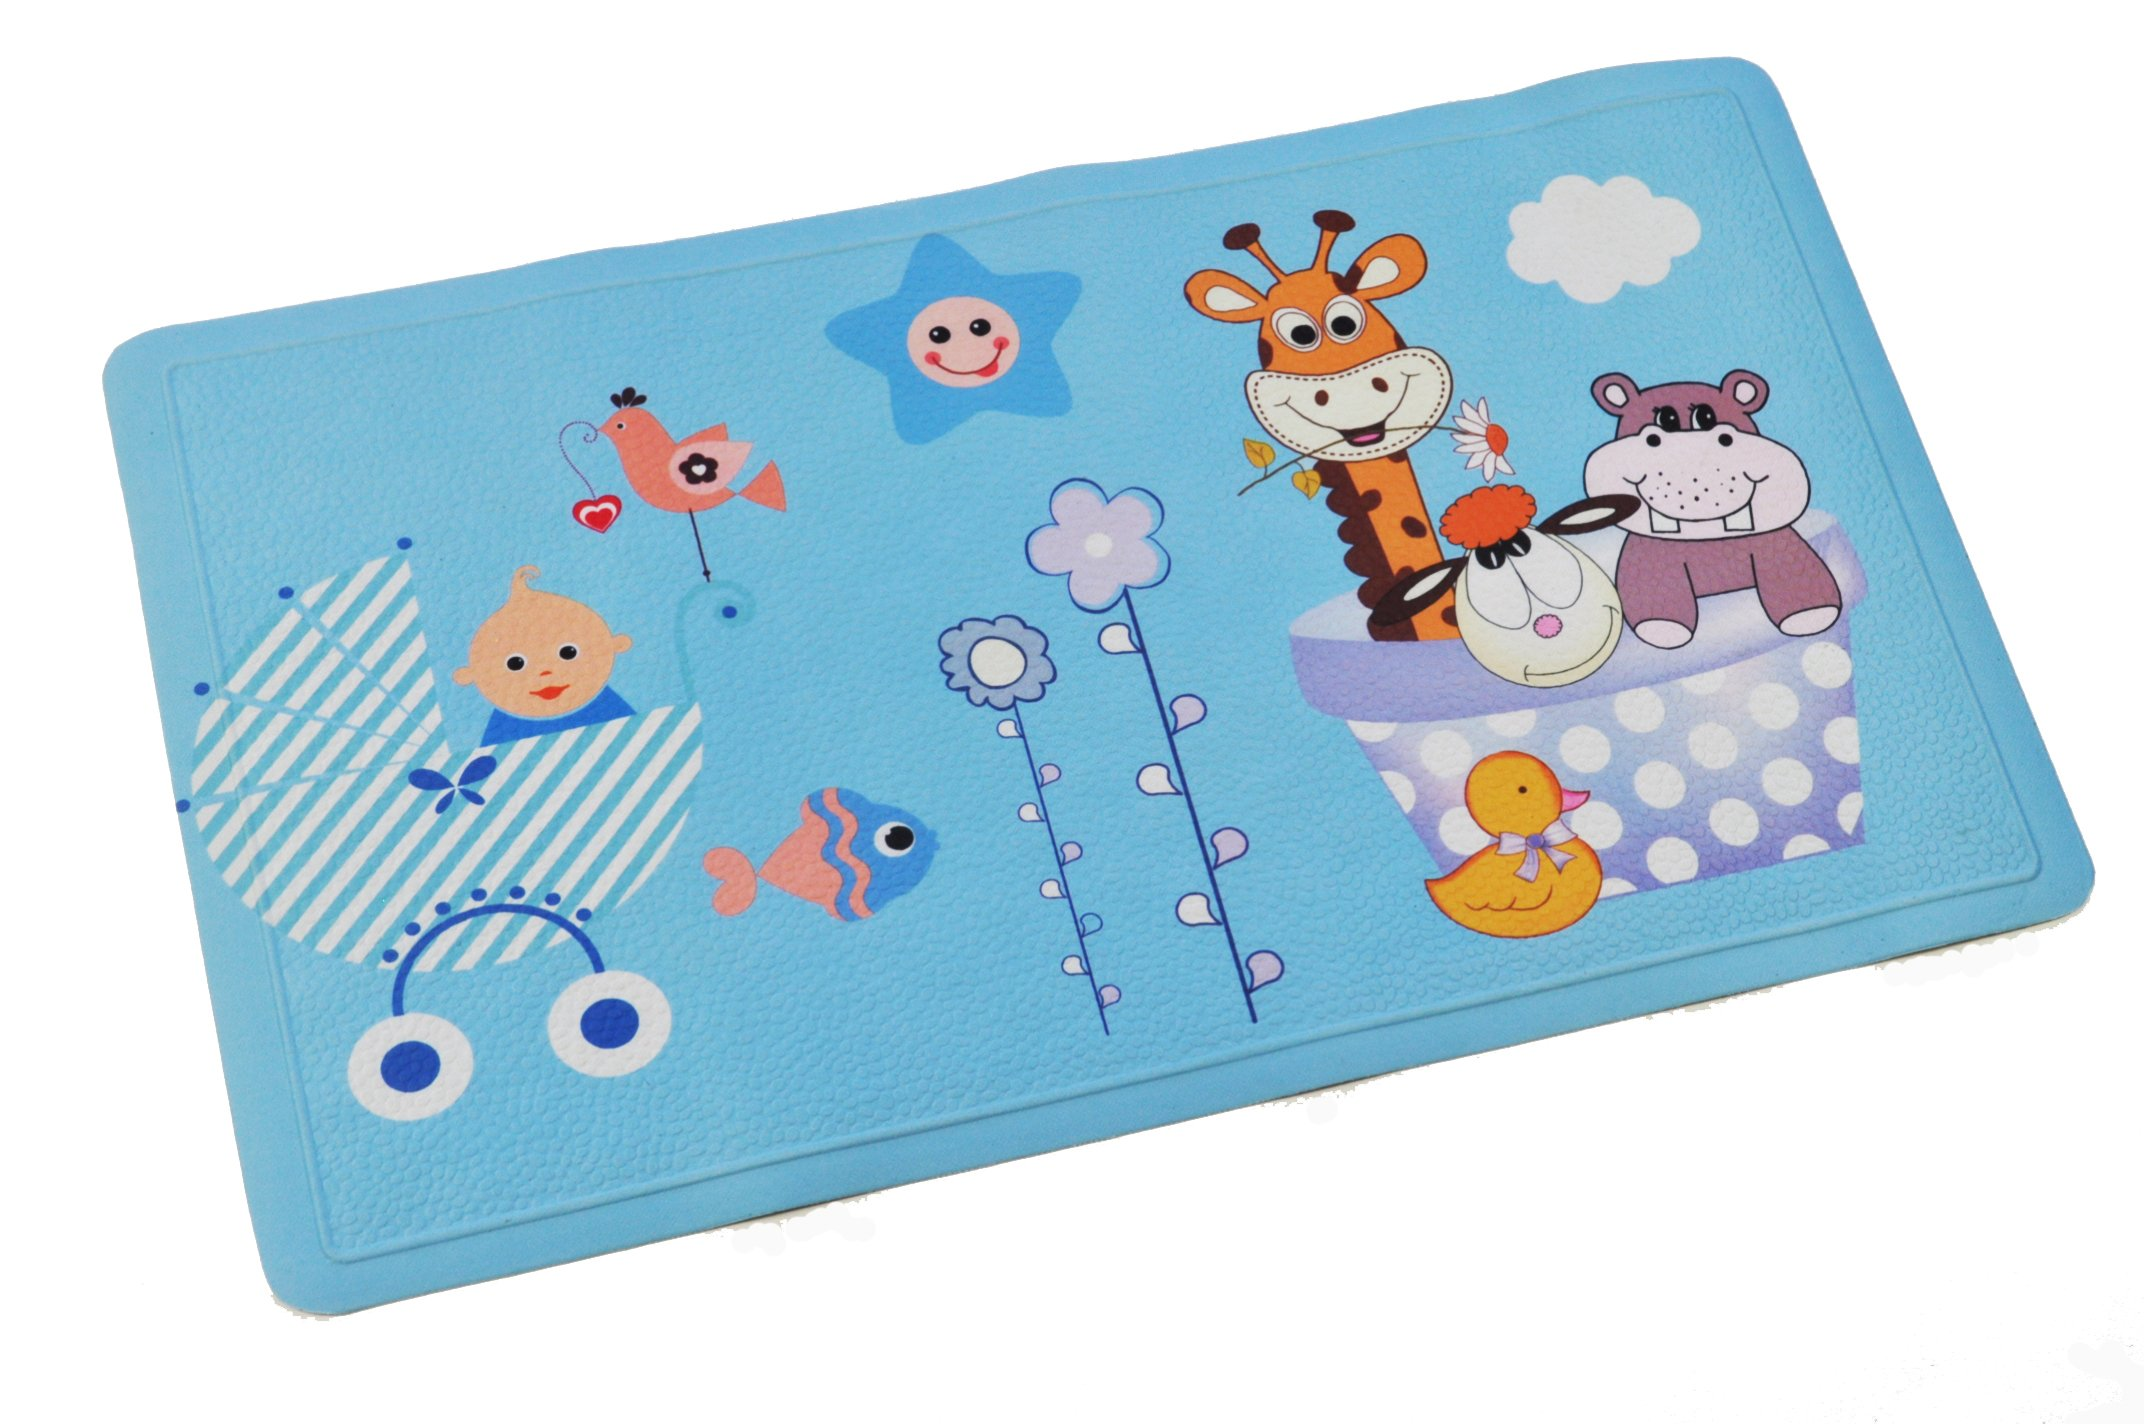 ABELE (R) Design Animal Rubber Non Slip Baby Kids Safety Shower Tub Bath Mat, Skid Proof and Anti Bacterial, Mildew Mold Resistant Bathtub Mat, w/ Cloth Coating (Animal Giraffe Fish Duck Sheep)